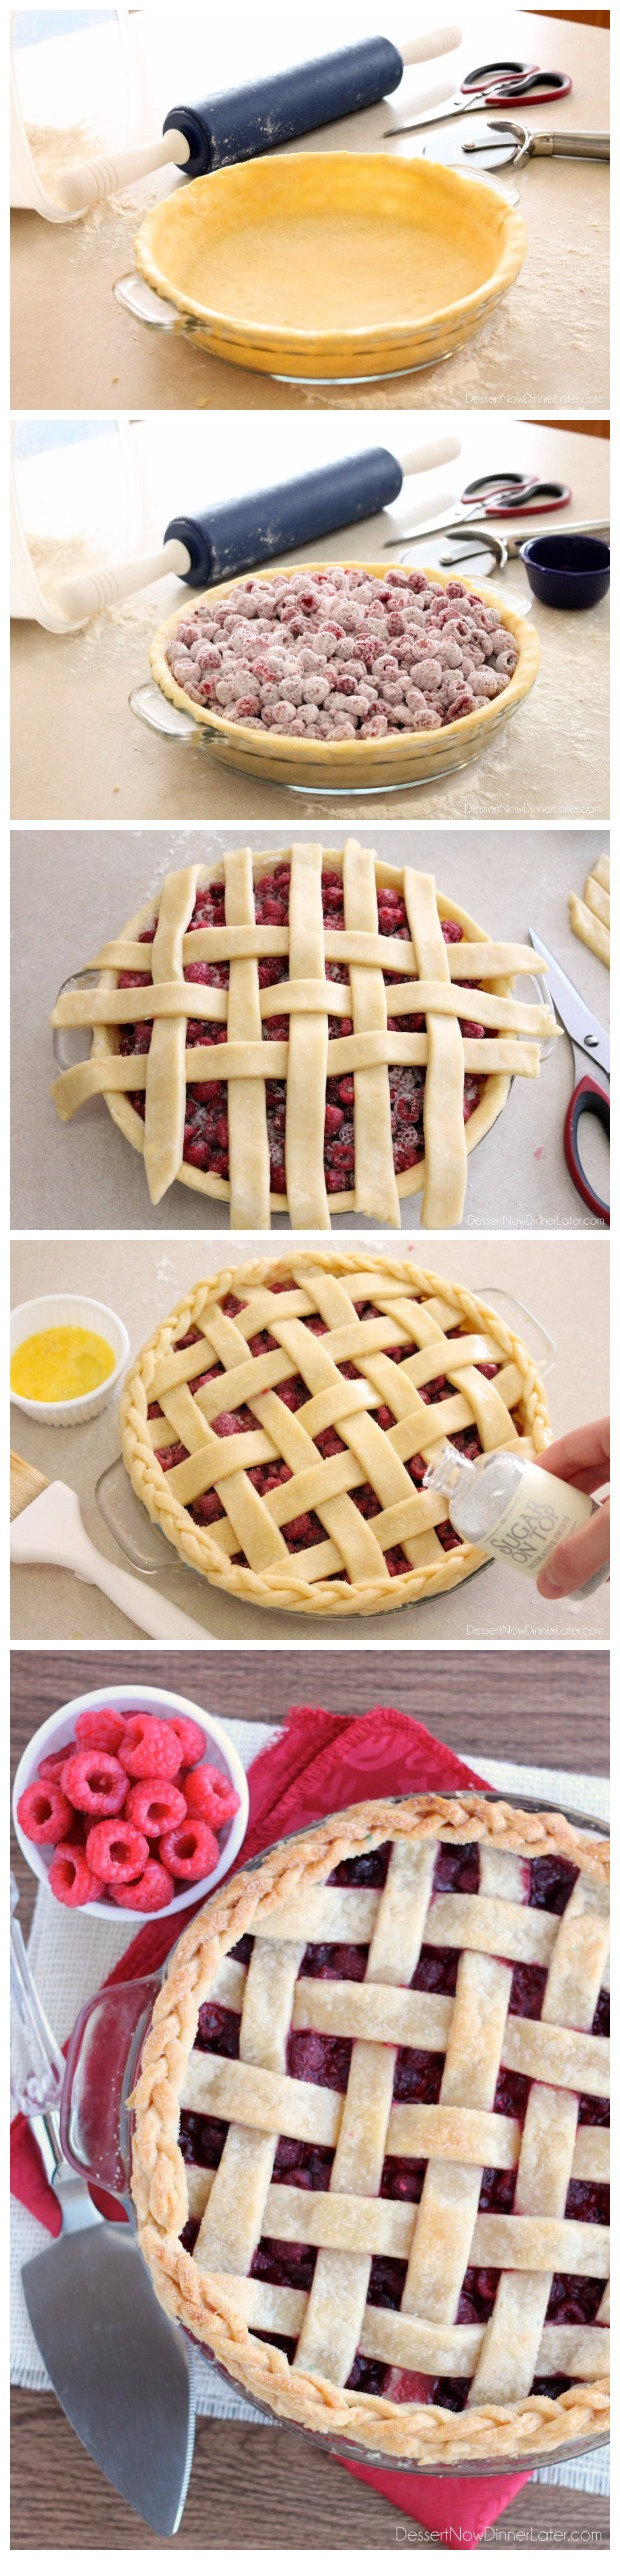 Lattice Pie Crust Tutorial